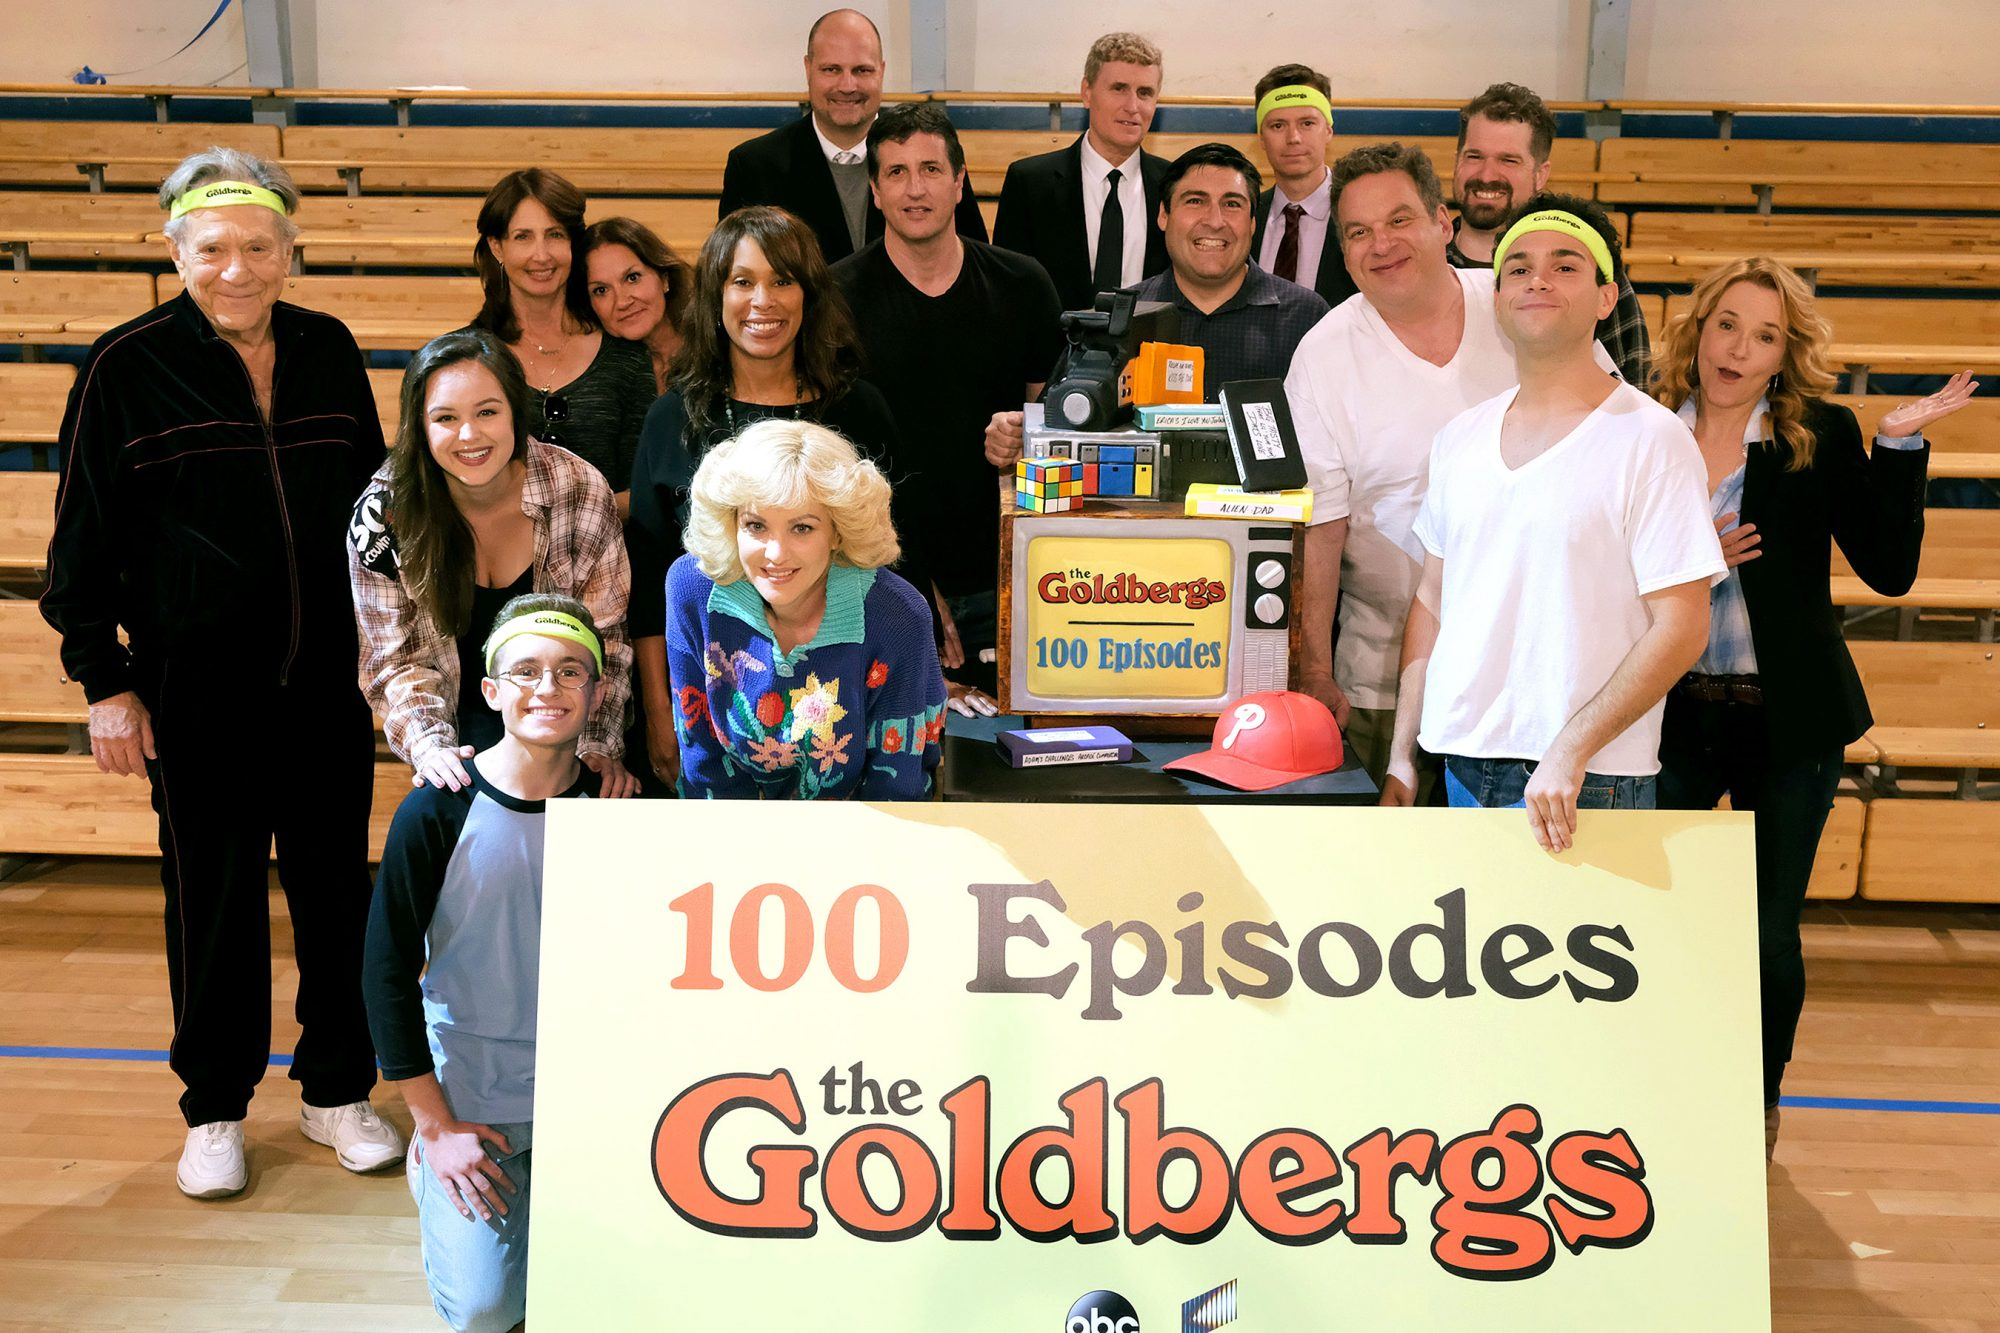 "GEORGE SEGAL, AJ MICHALKA, SEAN GIAMBRONE, CHANNING DUNGEY (PRESIDENT, ABC ENTERTAINMENT), WENDI MCLENDON-COVEY, DOUG ROBINSON (EXECUTIVE PRODUCER, ""THE GOLDBERGS""), ADAM F. GOLDBERG (CREATOR AND EXECUTIVE PRODUCER, ""THE GOLDBERGS""), JEFF GARLIN, TROY GEN"